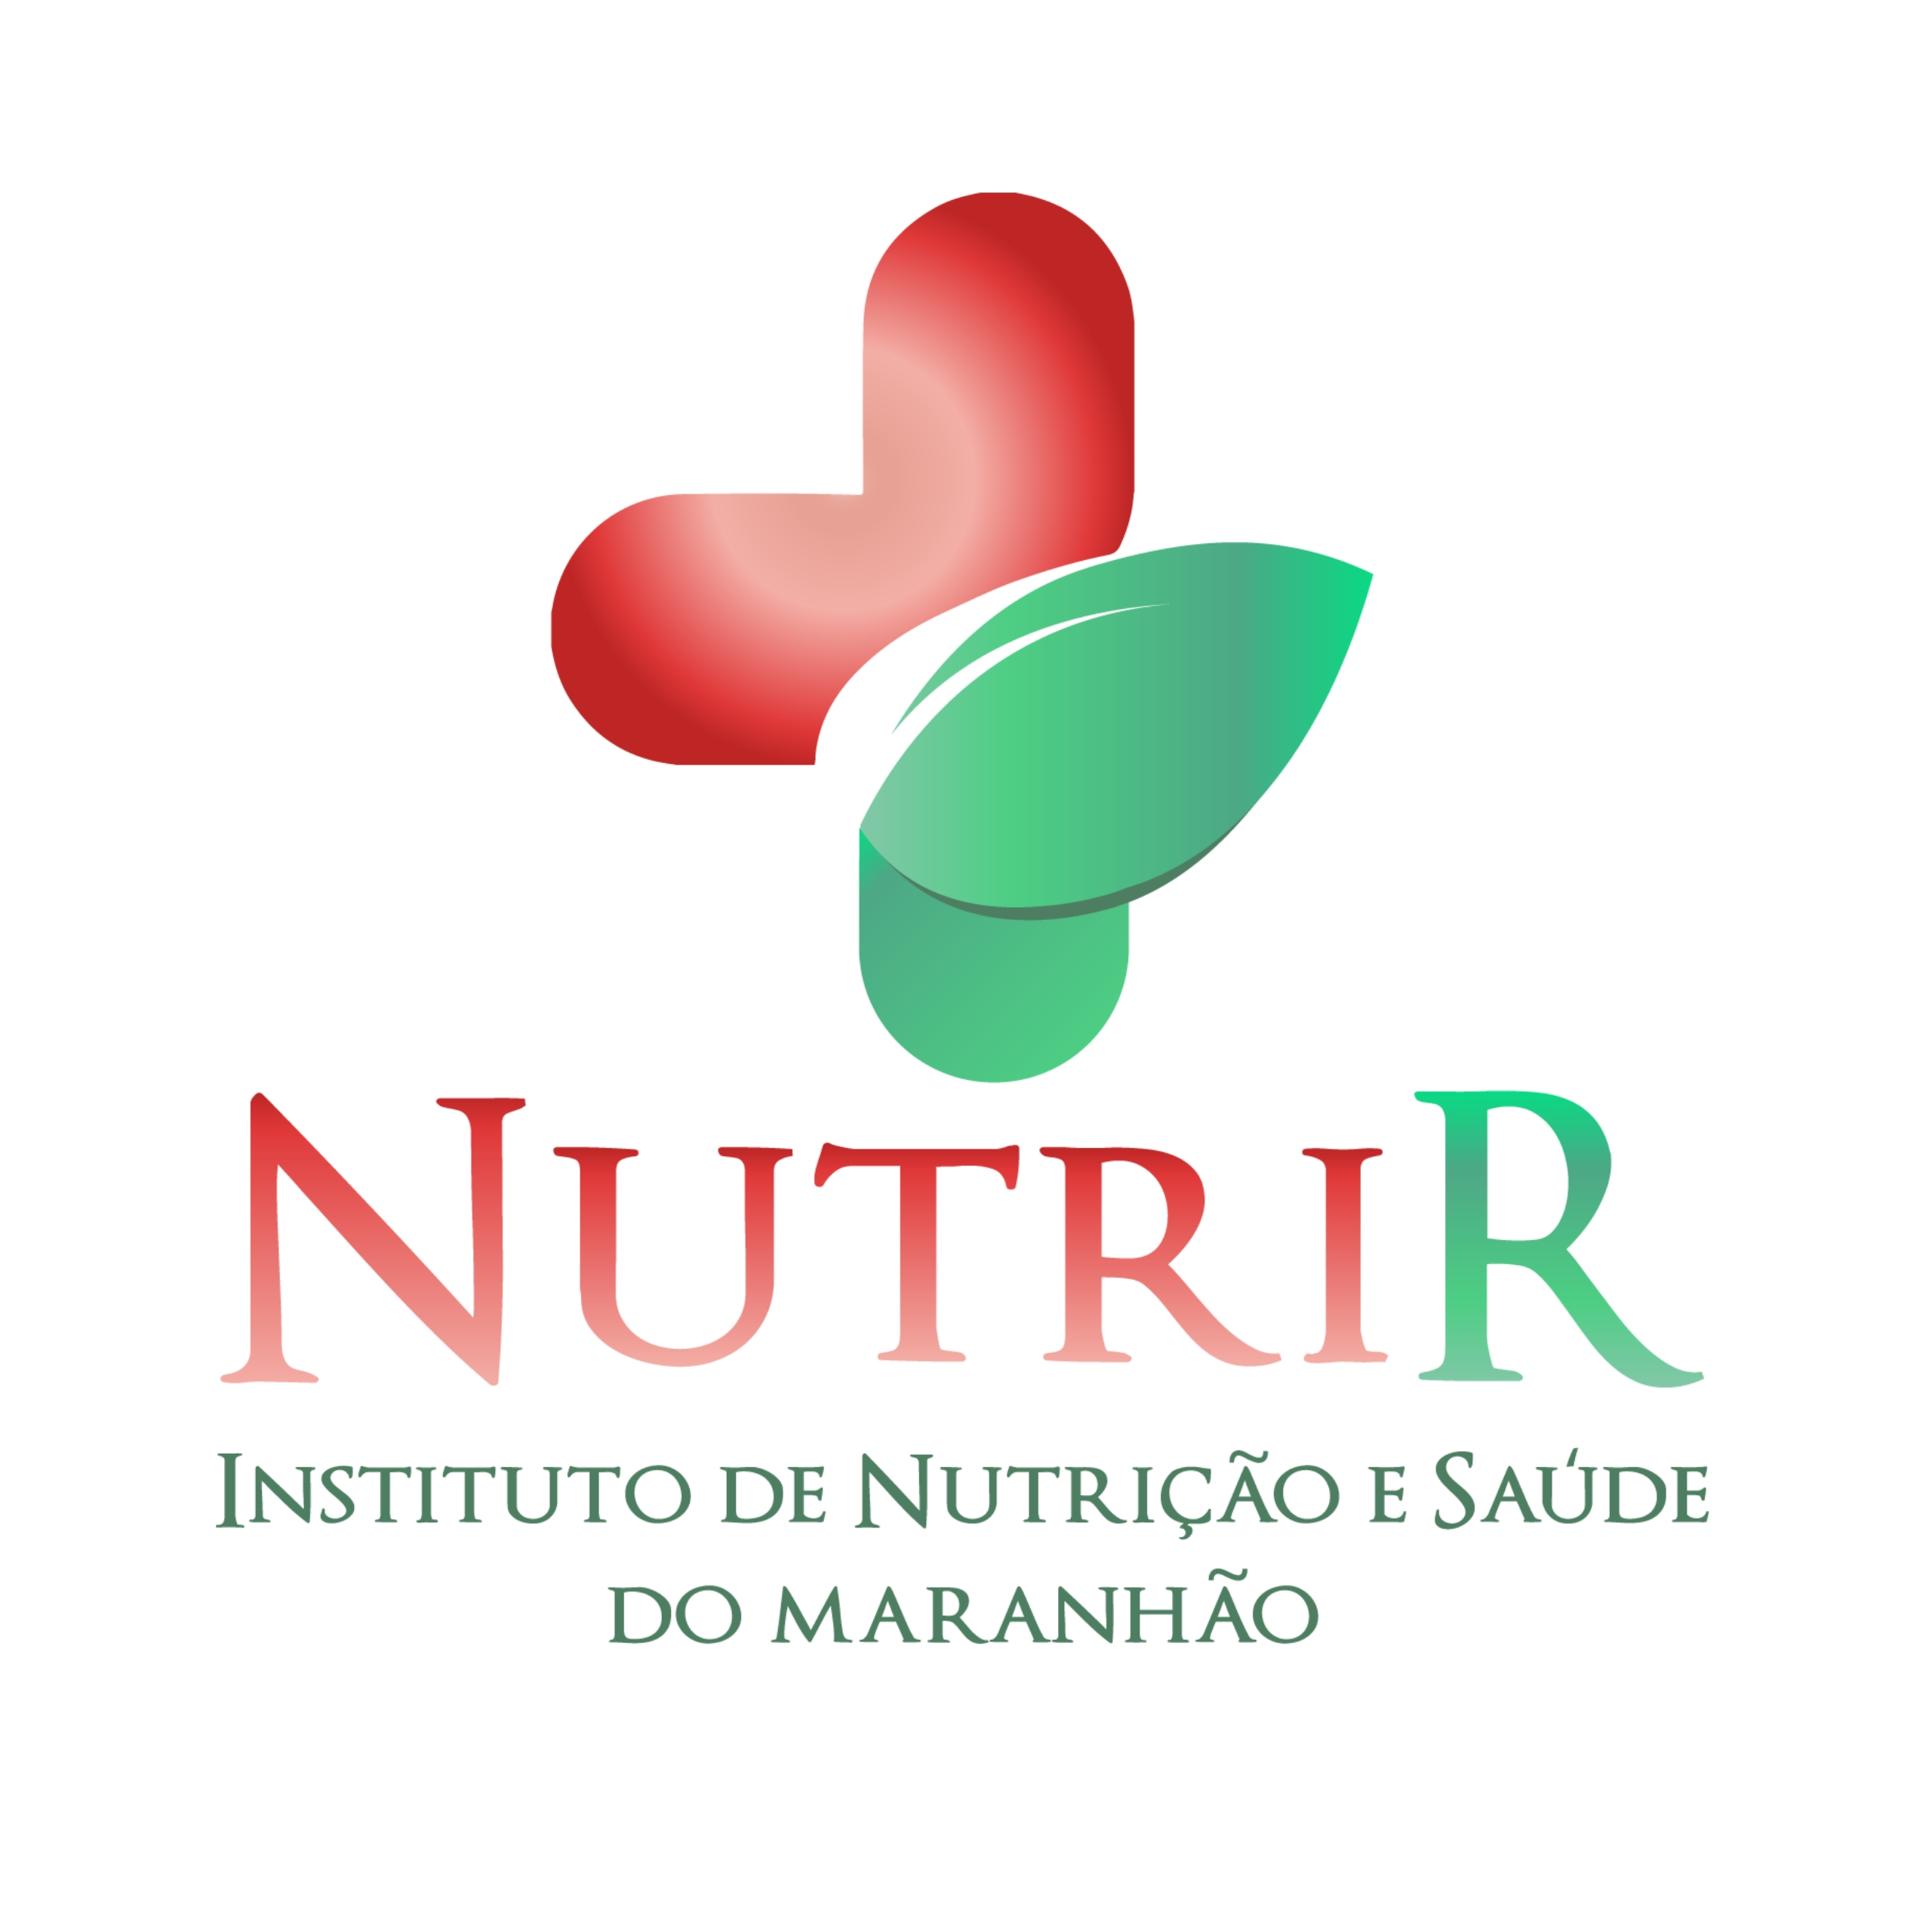 Instituto Nutrir logo